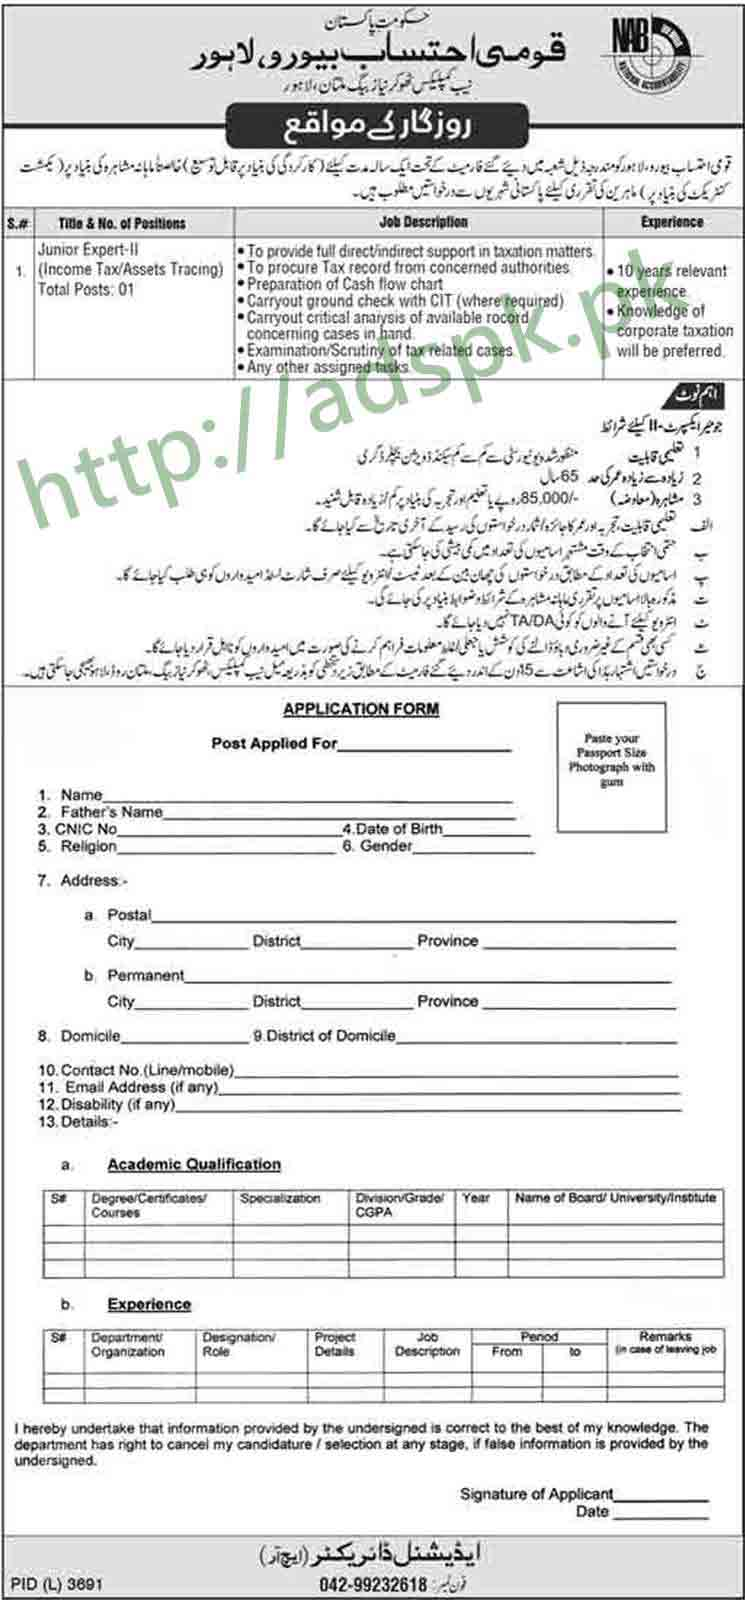 National Accountability Bureau Lahore NAB Jobs 2018 Junior Expert Income Tax Assets Tracing Jobs Application Form Deadline 25-03-2018 Apply Now